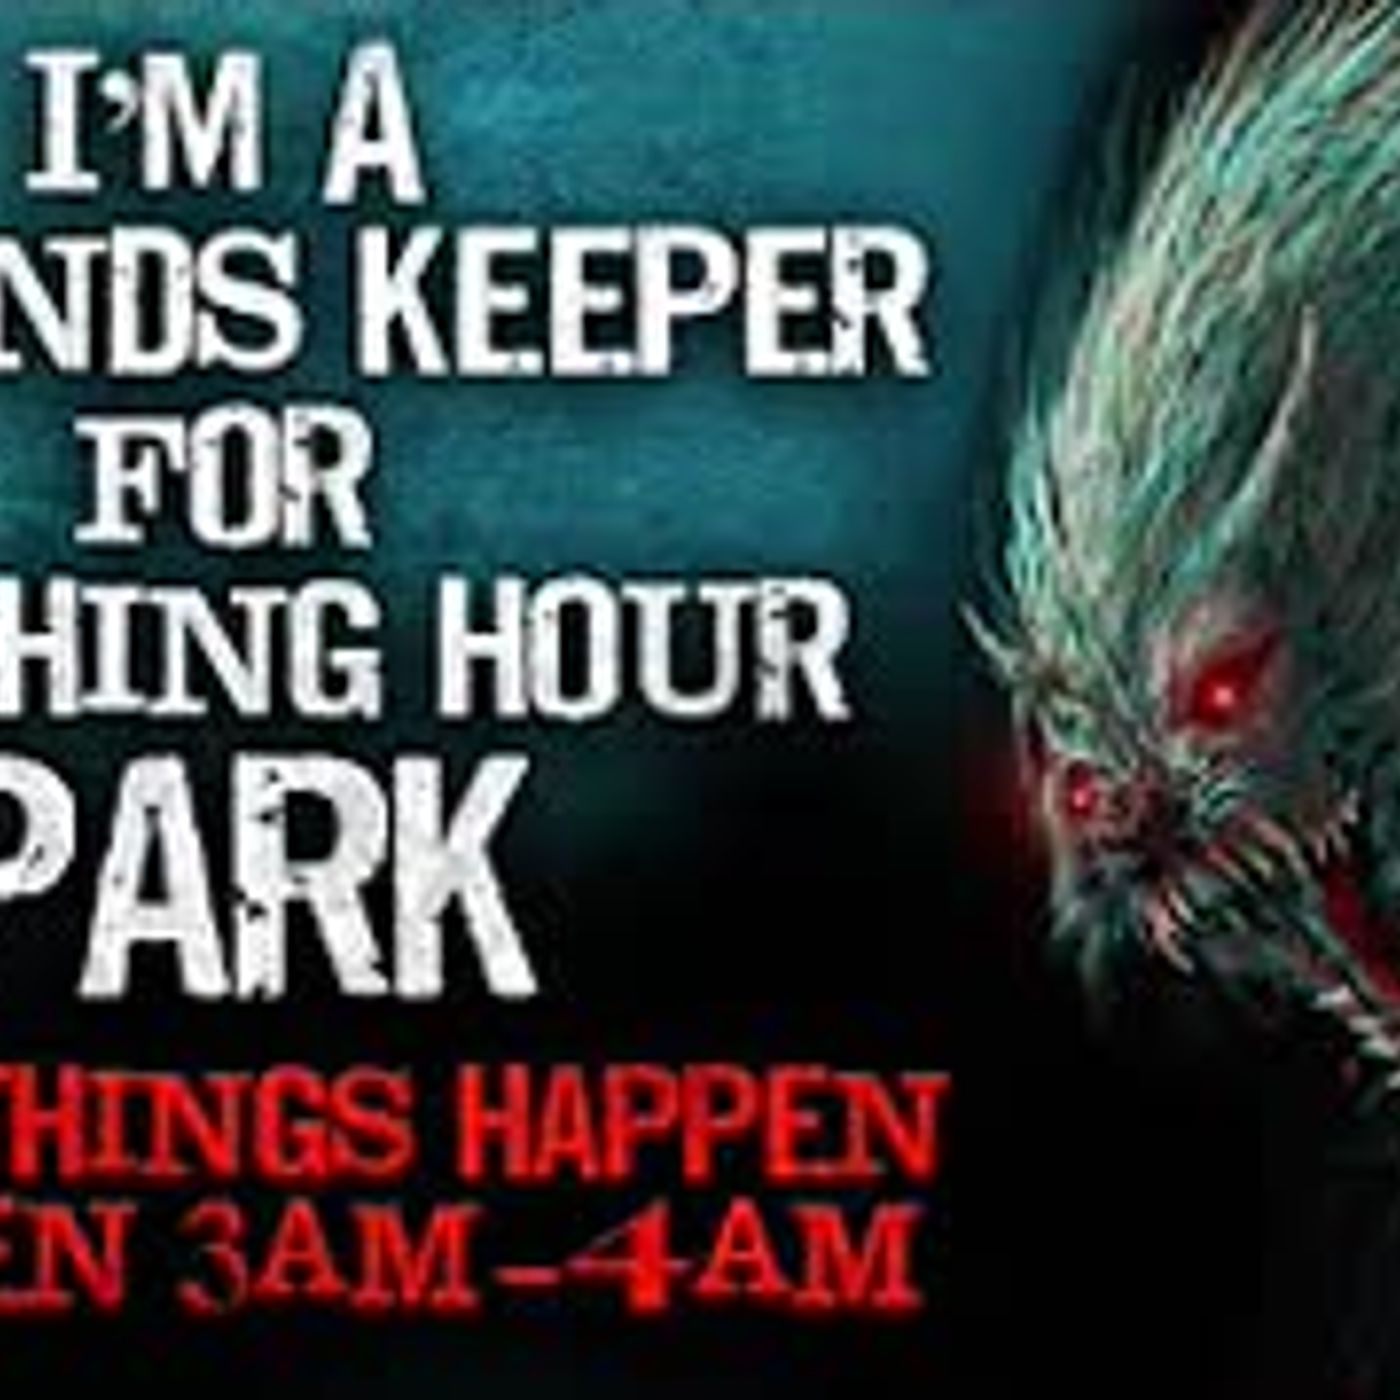 """Crazy things happen between 3am-4am at Witching Hour Park"" Creepypasta"